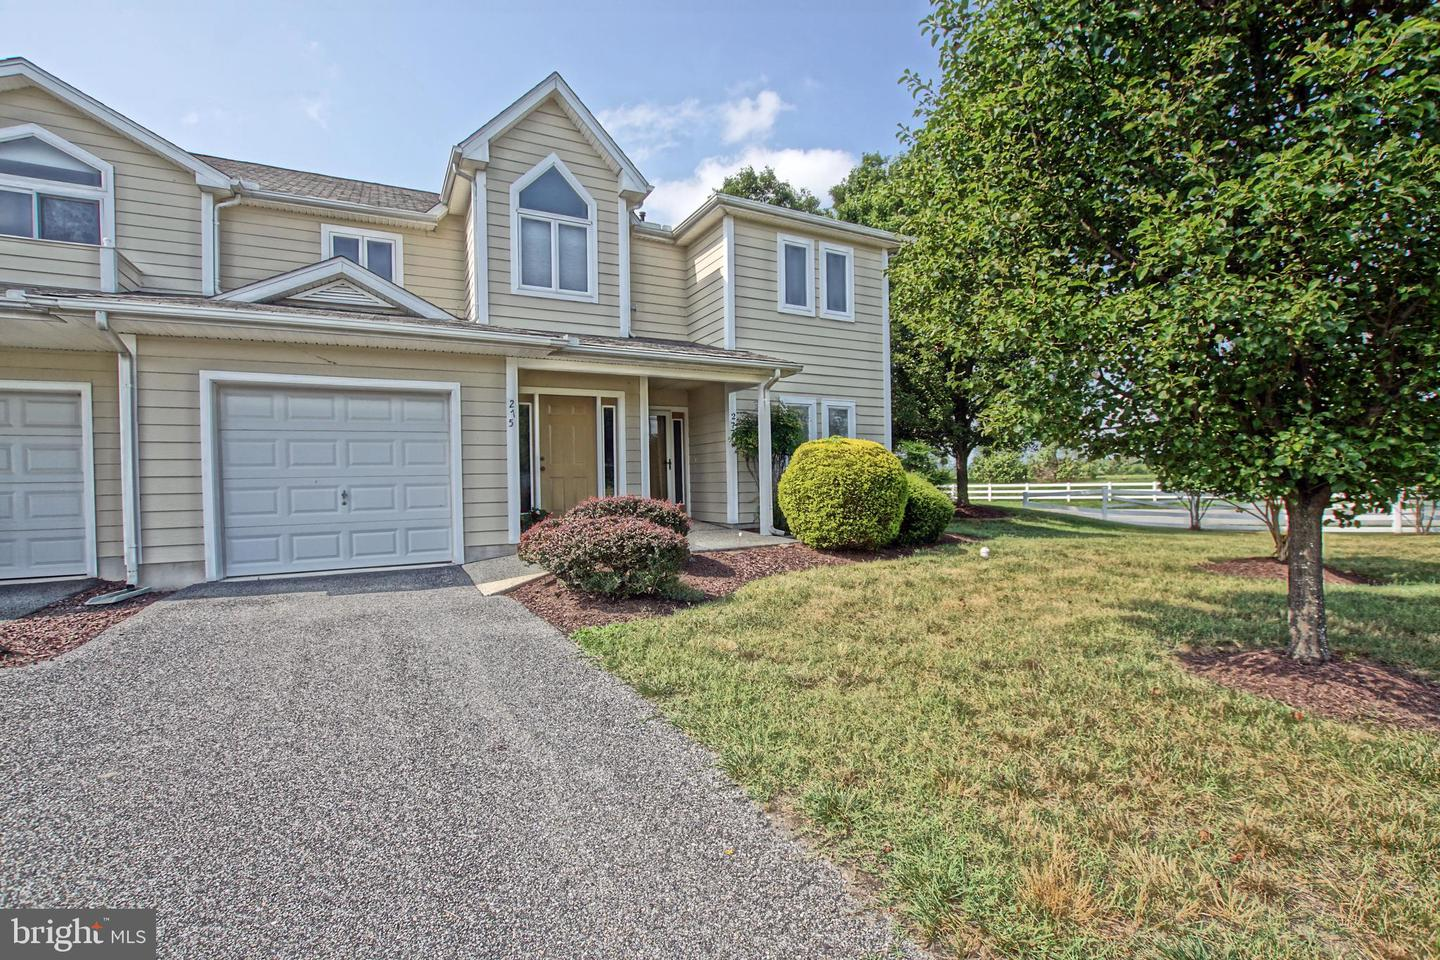 DESU144386-301896934839-2019-09-28-13-09-46 277 Lakeside Dr | Lewes, DE Real Estate For Sale | MLS# Desu144386  - Lee Ann Group